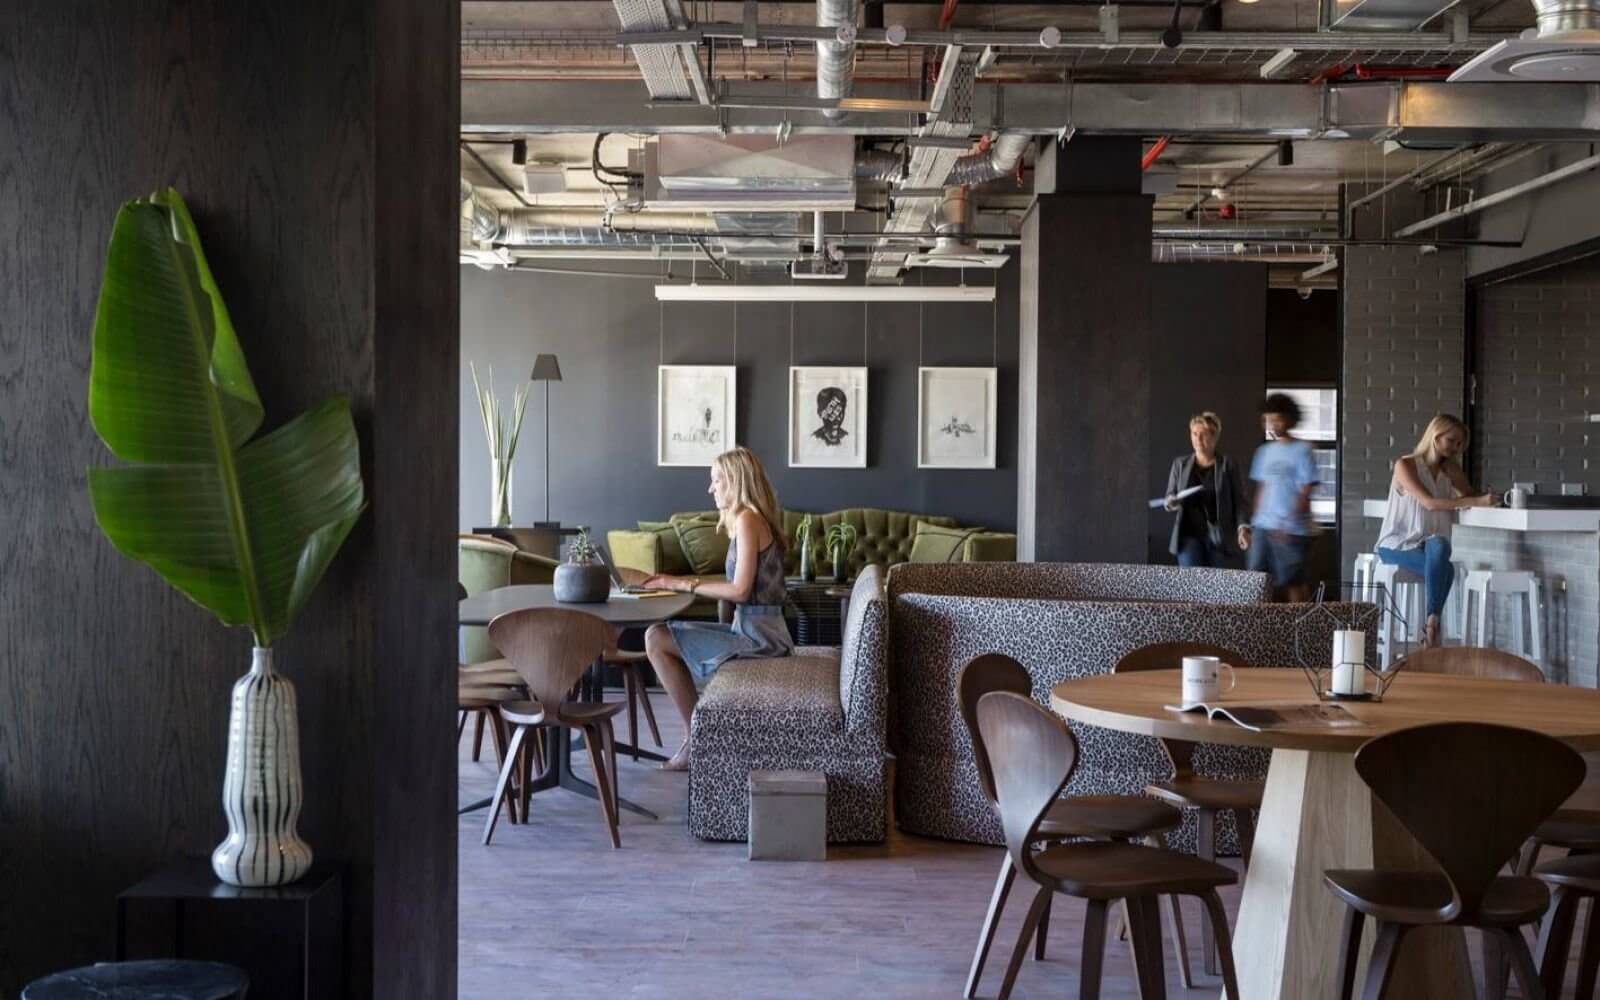 Work & Co Coworking Space in Cape Town, South Africa